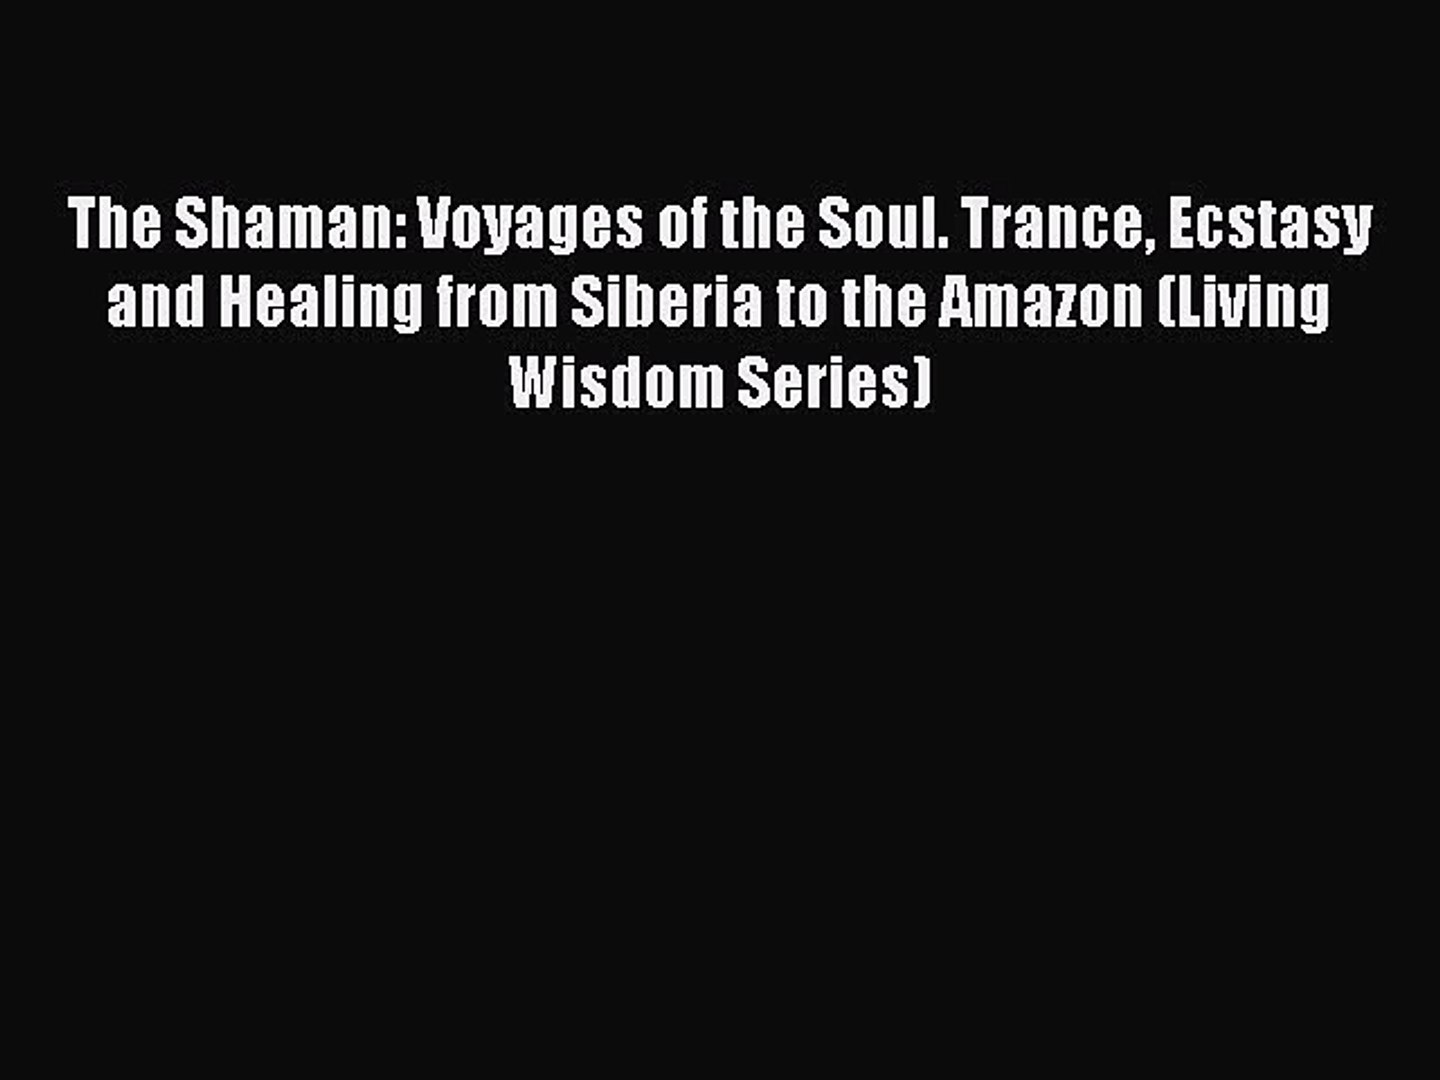 [PDF] The Shaman: Voyages of the Soul. Trance Ecstasy and Healing from Siberia to the Amazon